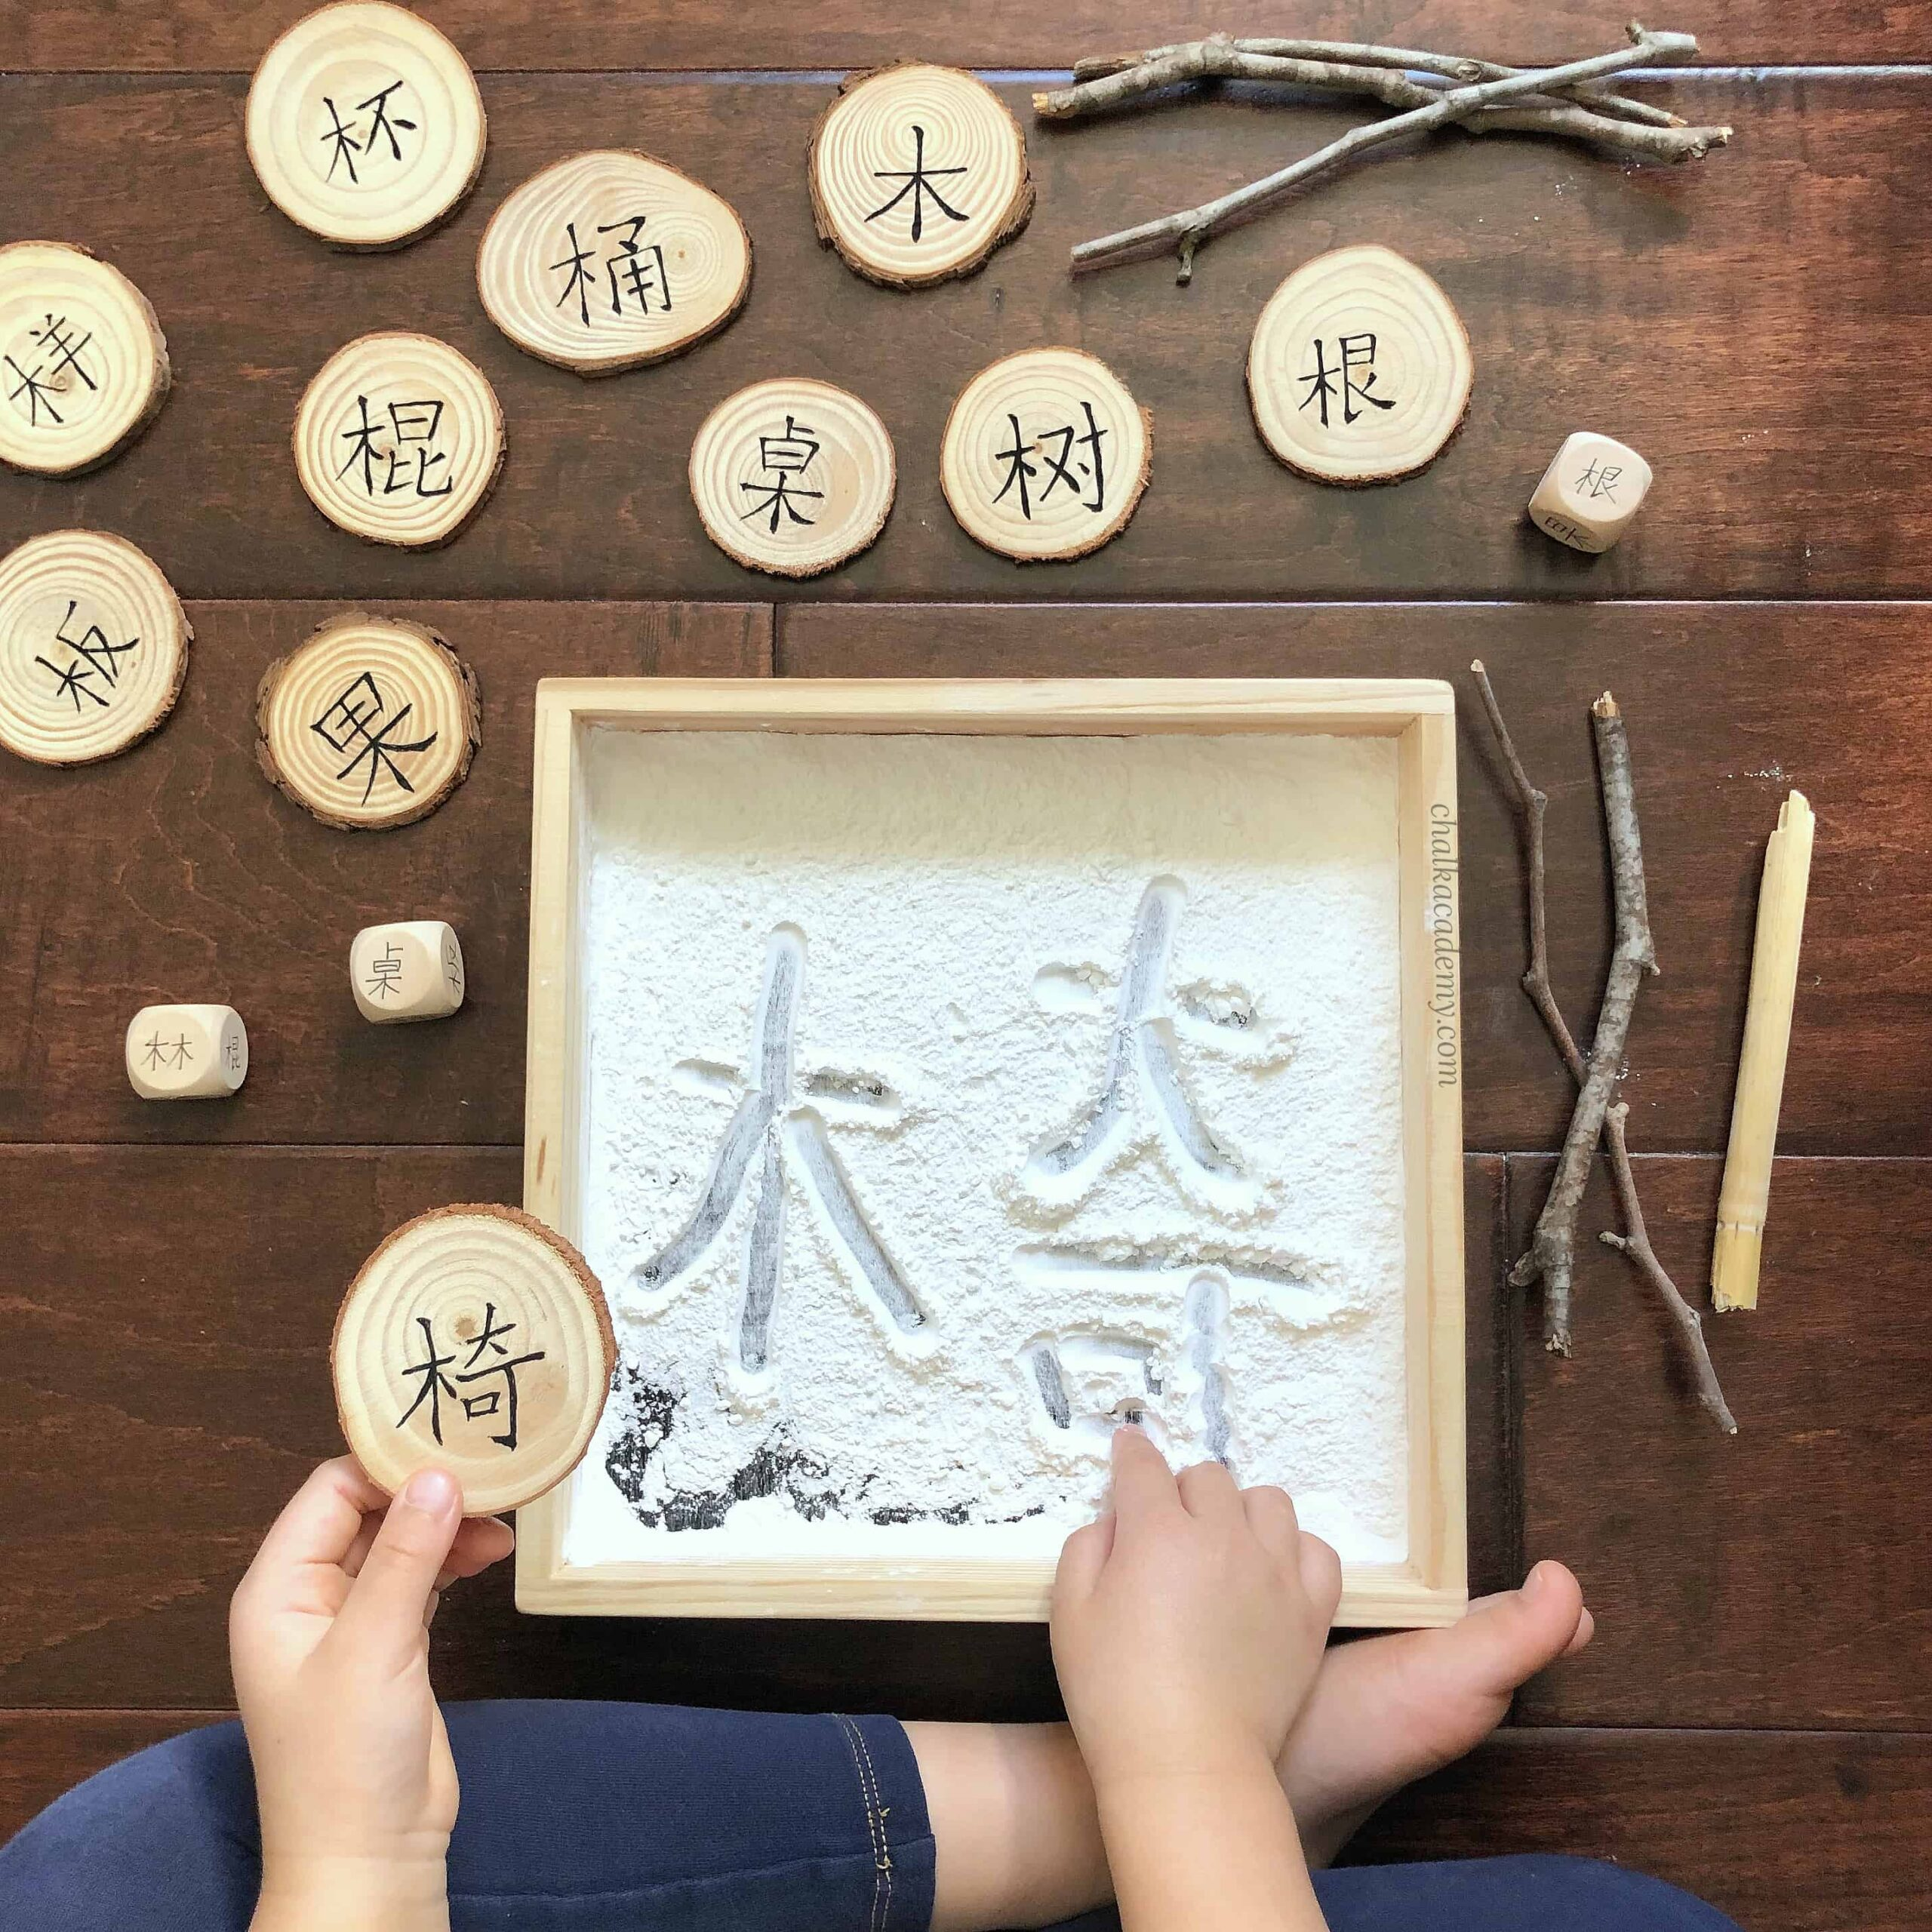 Chinese 木 Radical Words – Wood Dice and Sensory Writing Game